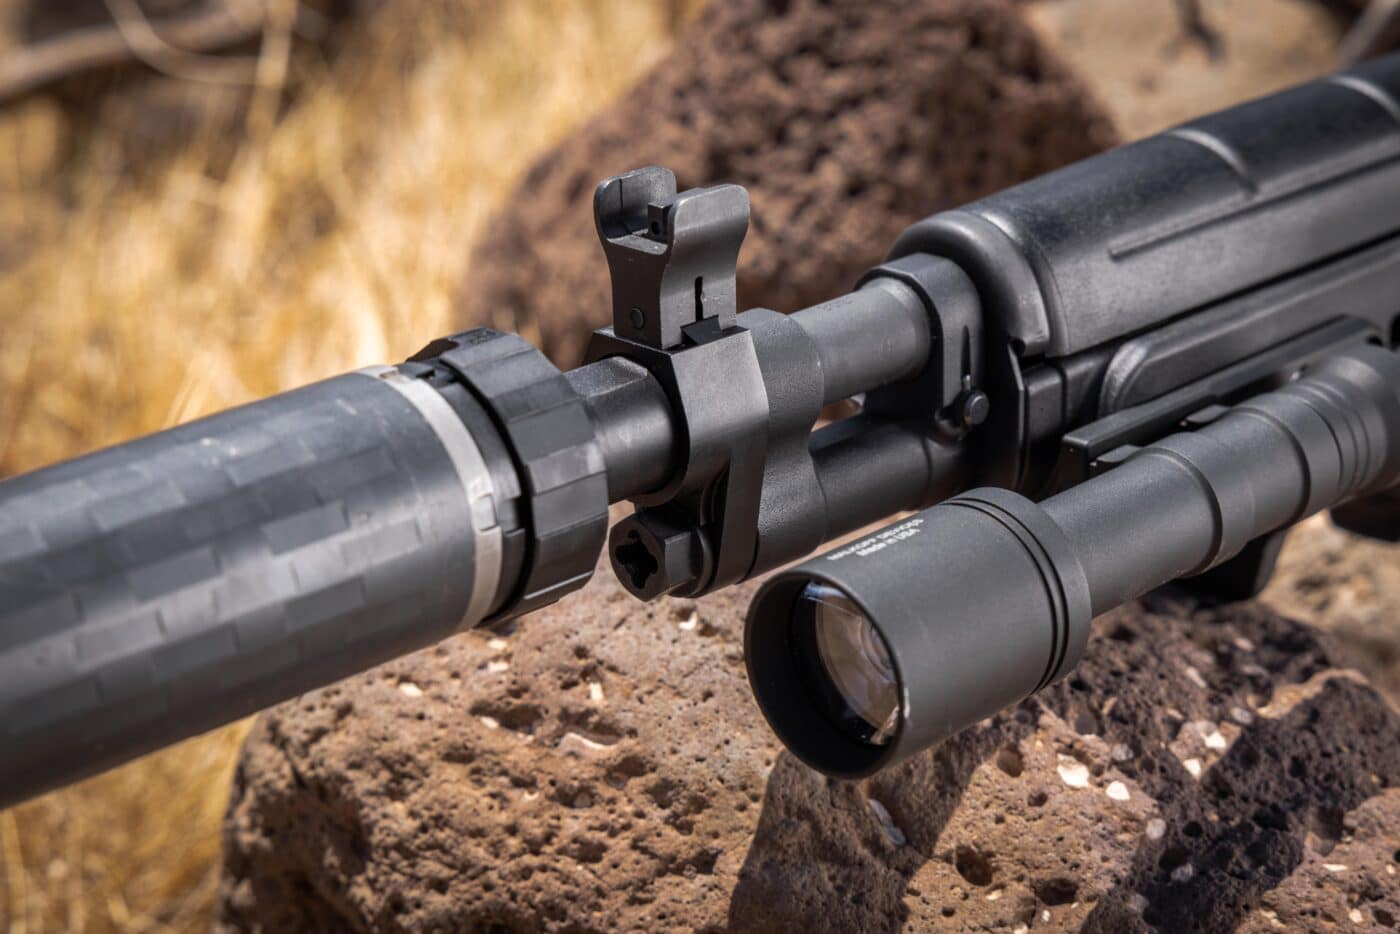 Delta P Design SOCOM Muzzle Tread Adapter and Schester Manufacturing M1A SOCOM Gas Plug on an M1A rifle